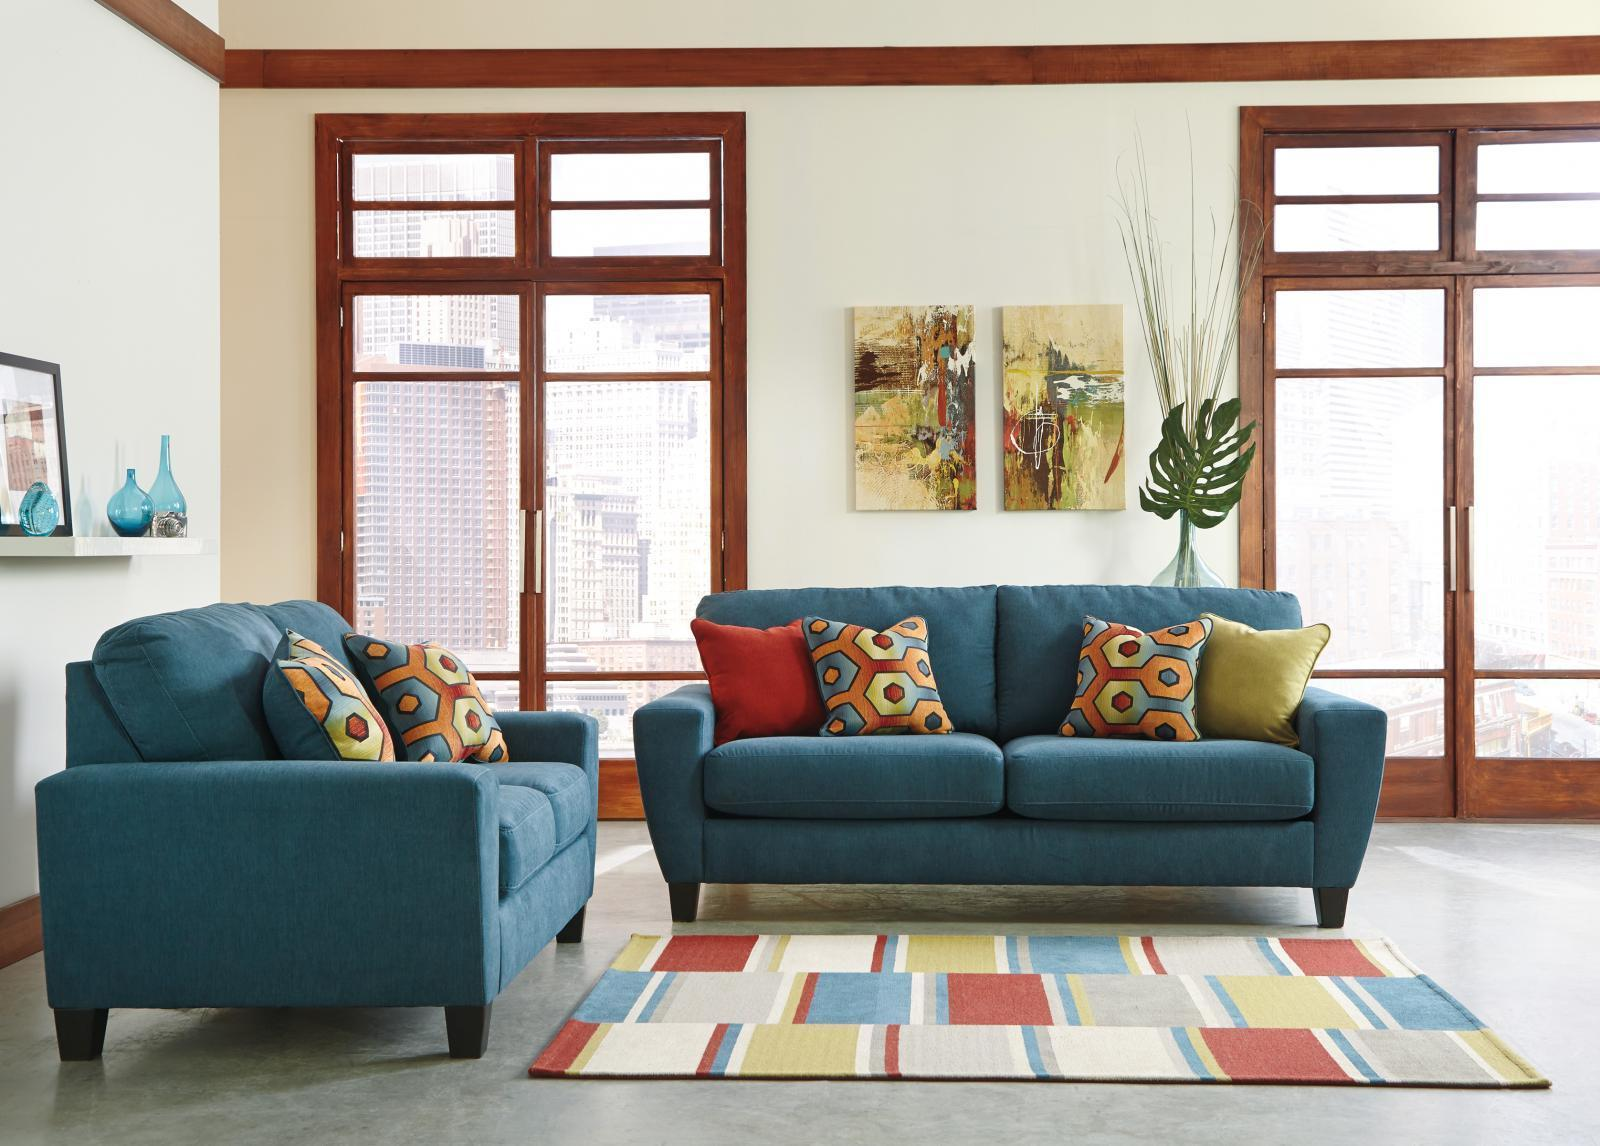 Ashley Sagen Living Room Set 2pcs in Teal Textured Microfiber Contemporary Style